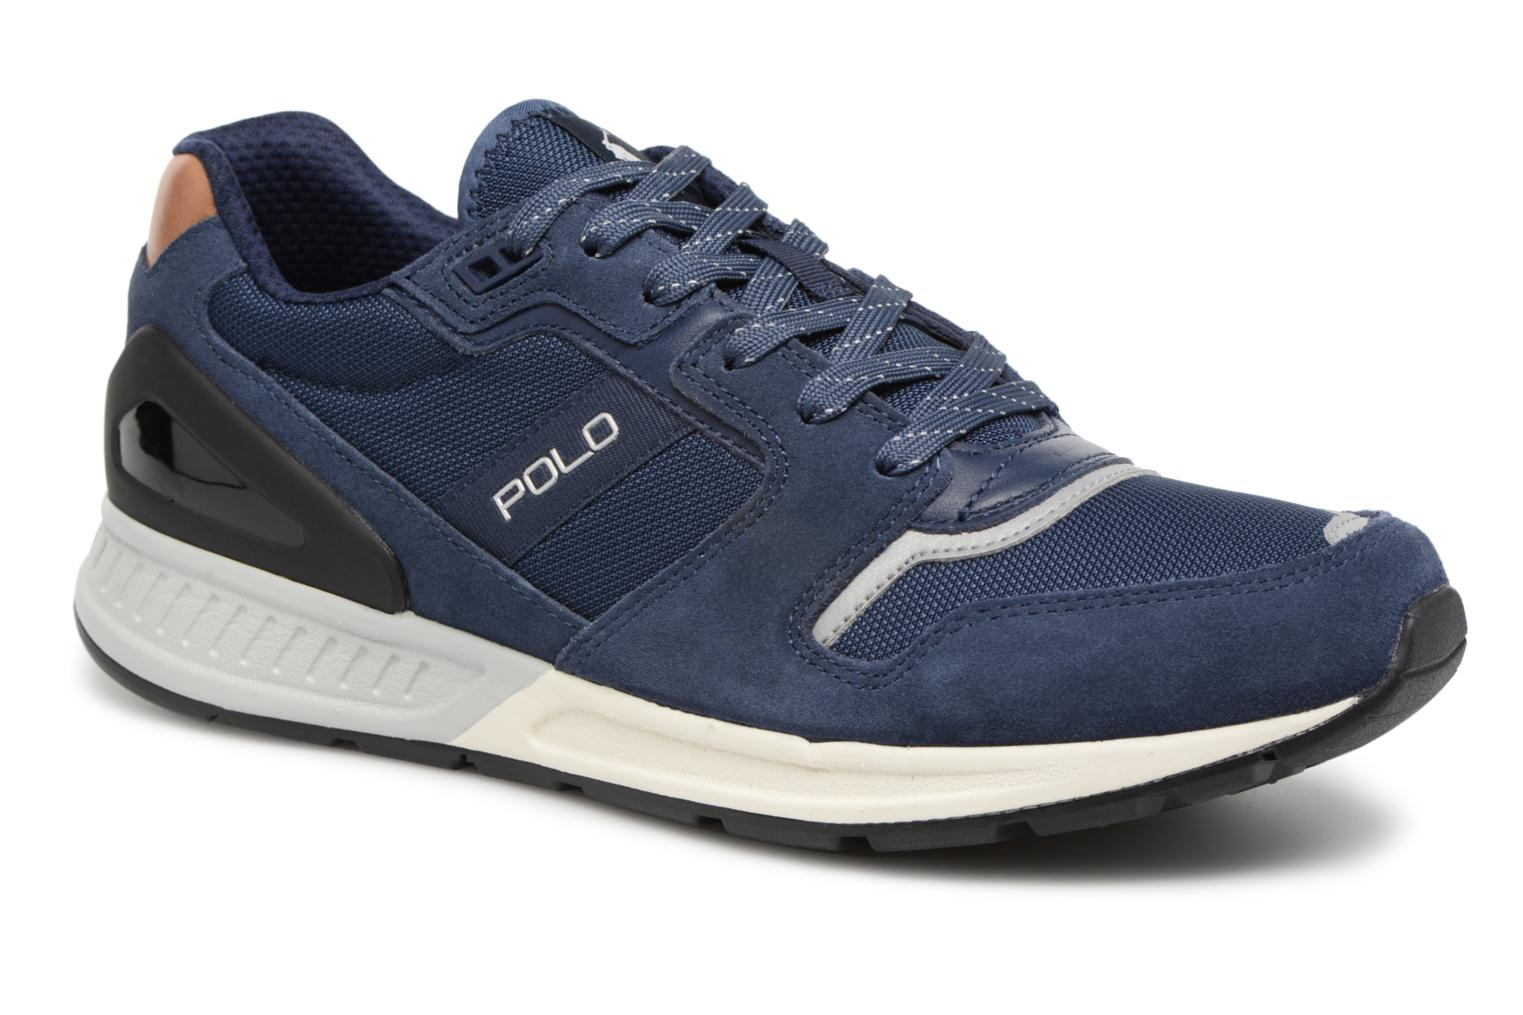 Polo Ralph Lauren Train100 Chaussures De Sport - Bleu CGffVcLvtR